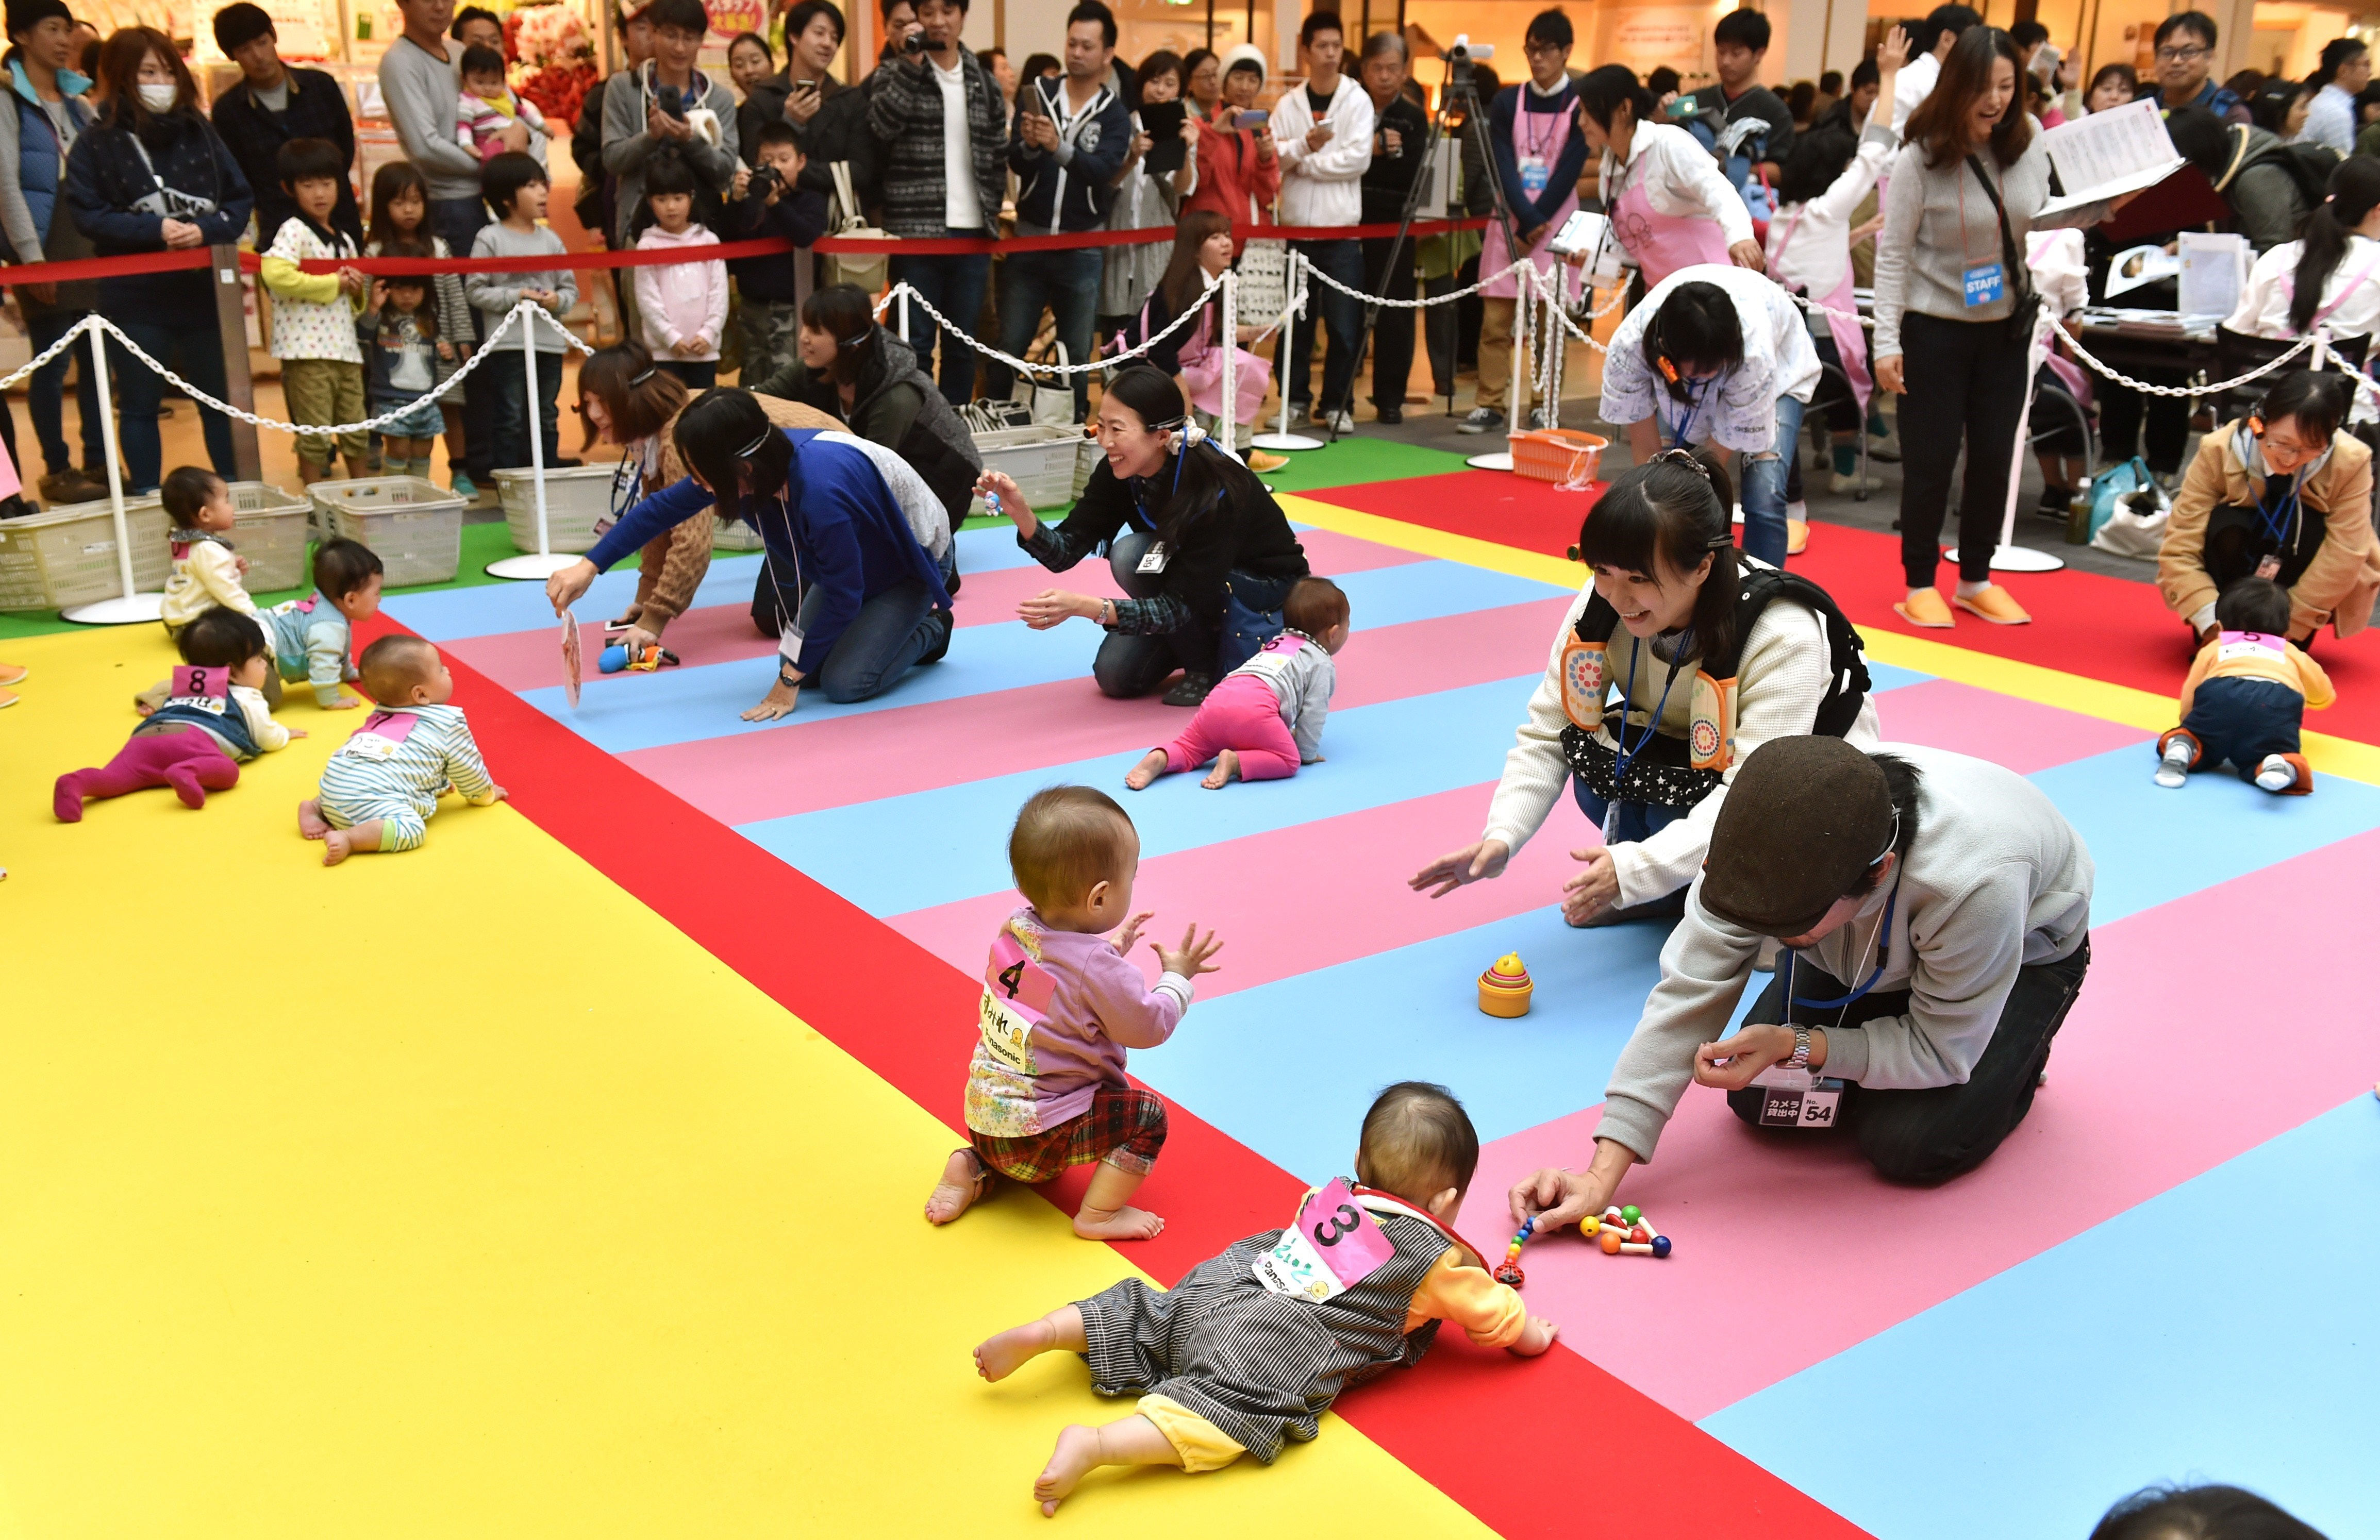 Babies compete in a baby crawling competition hosted by a Japanese magazine that specializes in pregnancy, childbirth and child-rearing, in Yokohama, Kanagawa on Nov. 23, 2015.